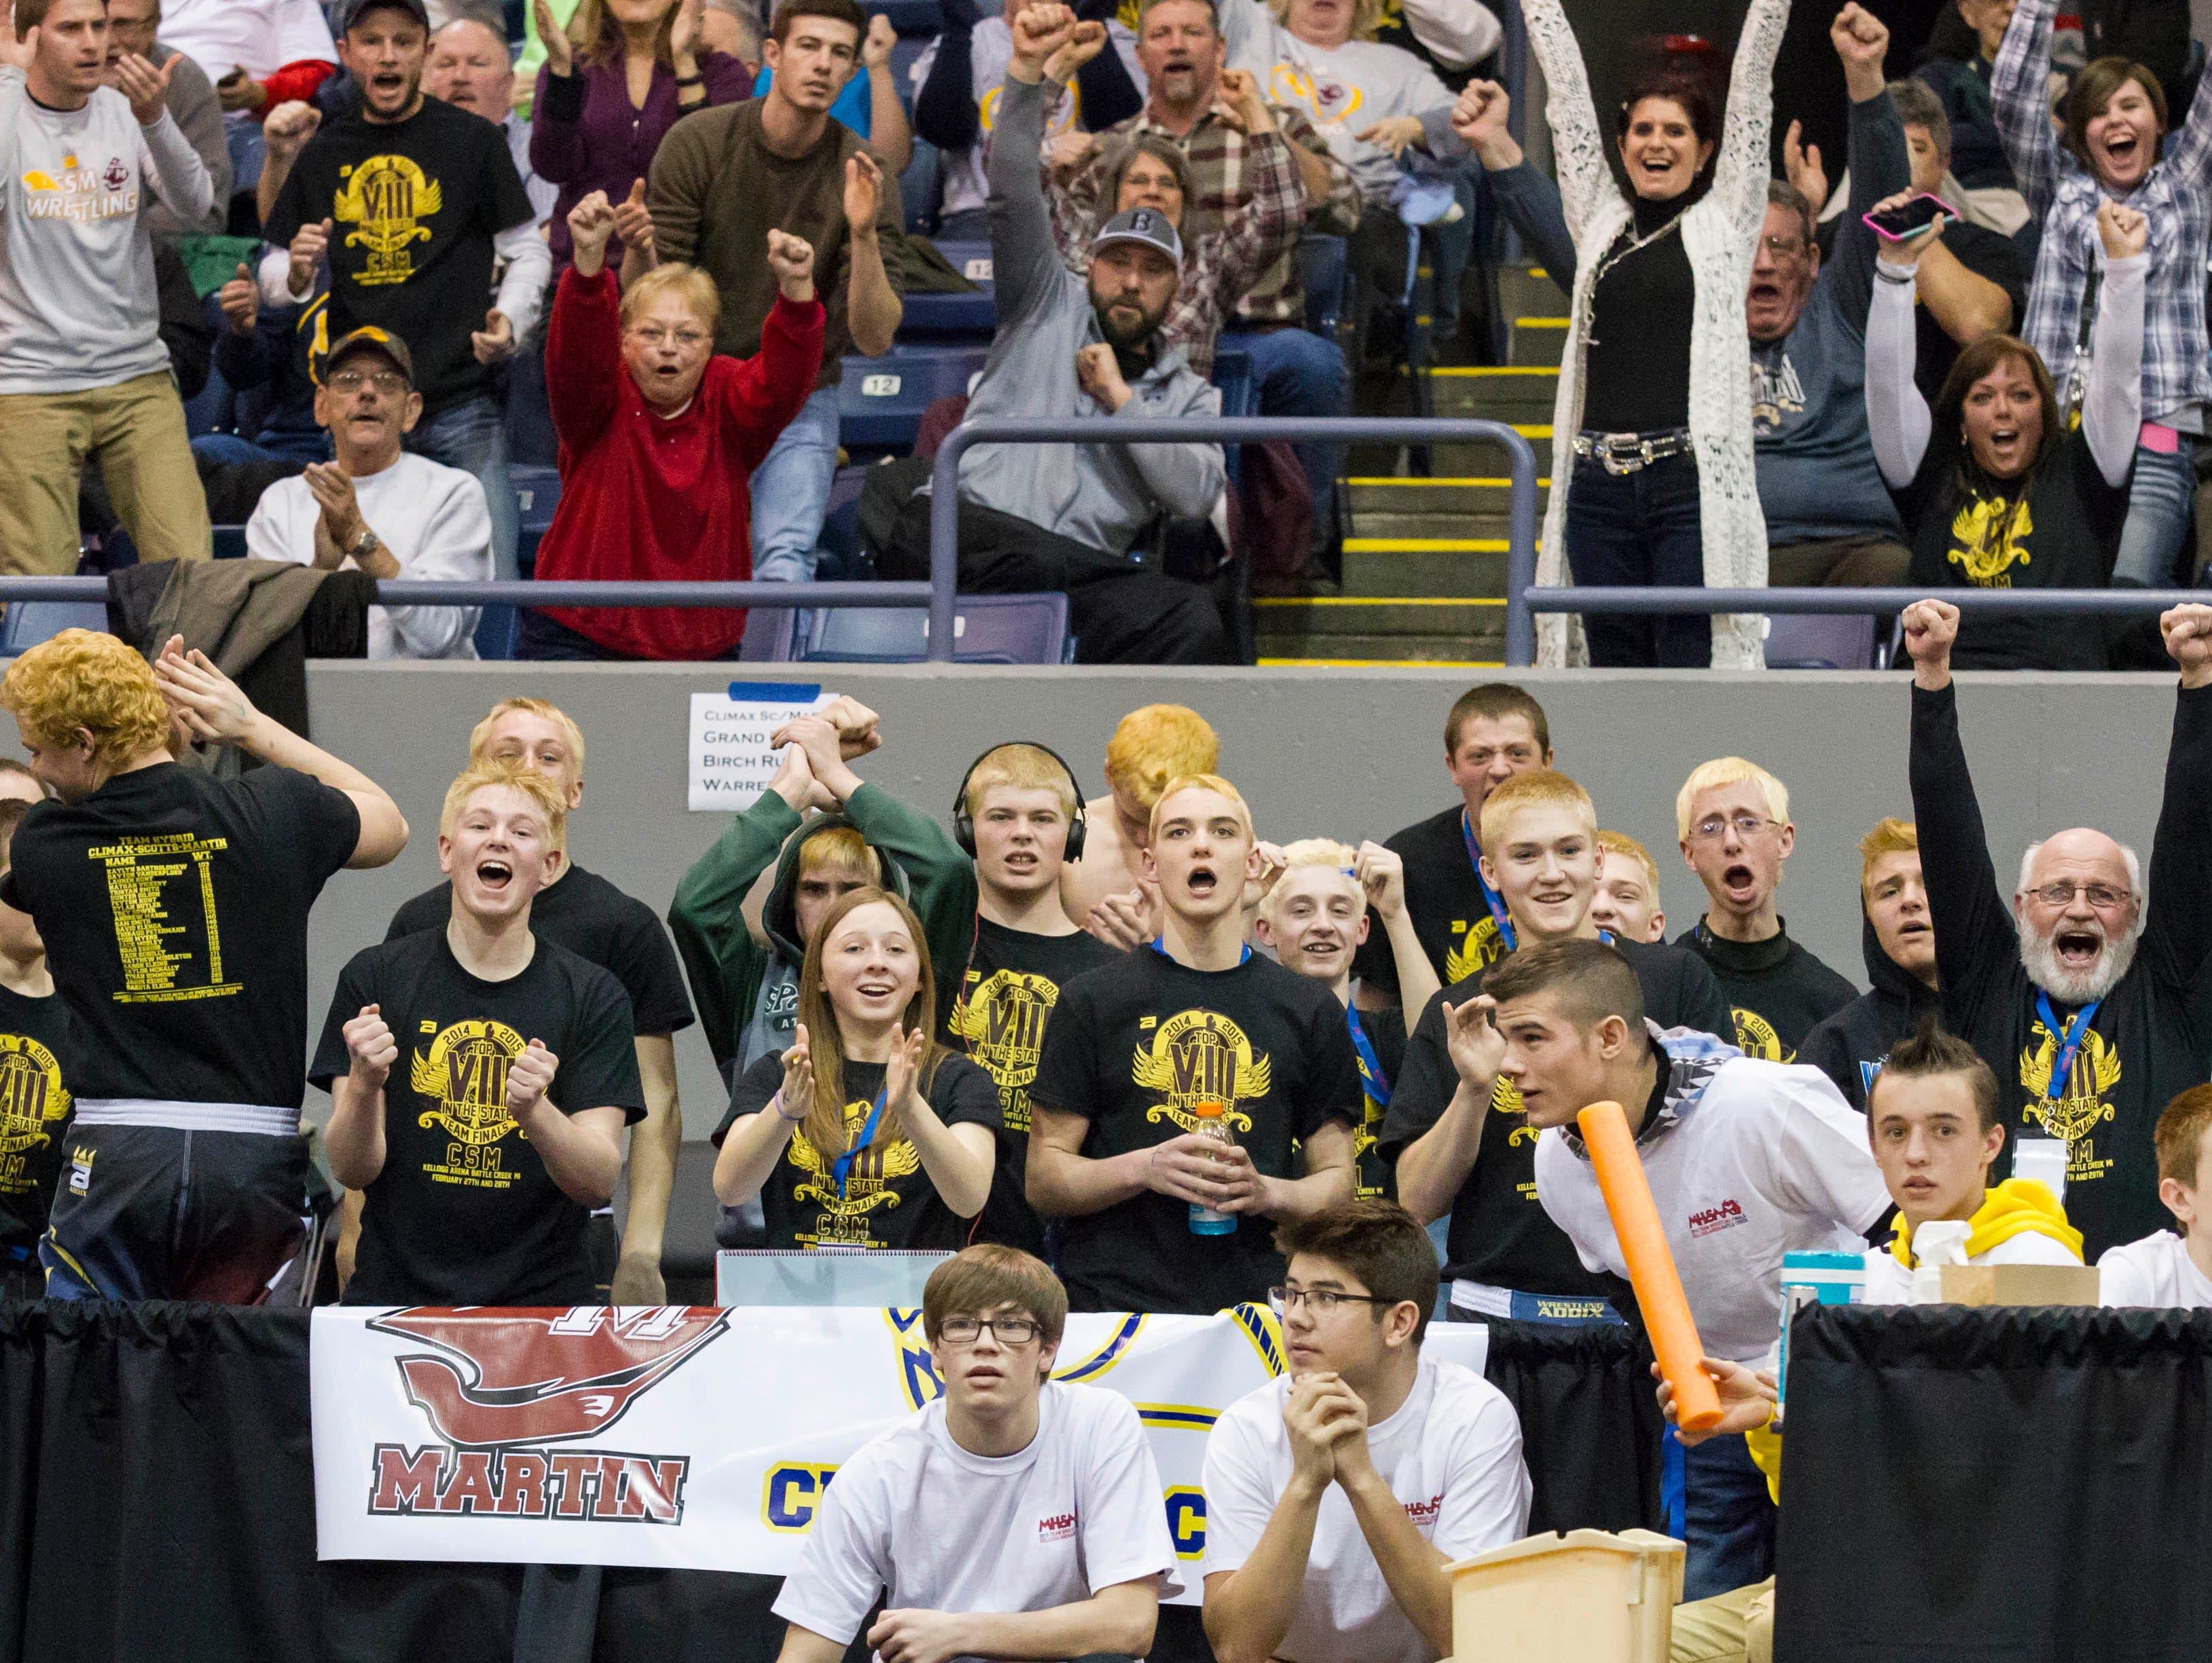 Climax-Scotts/Martin teammates and fans celebrate a pin during last year's team tournament